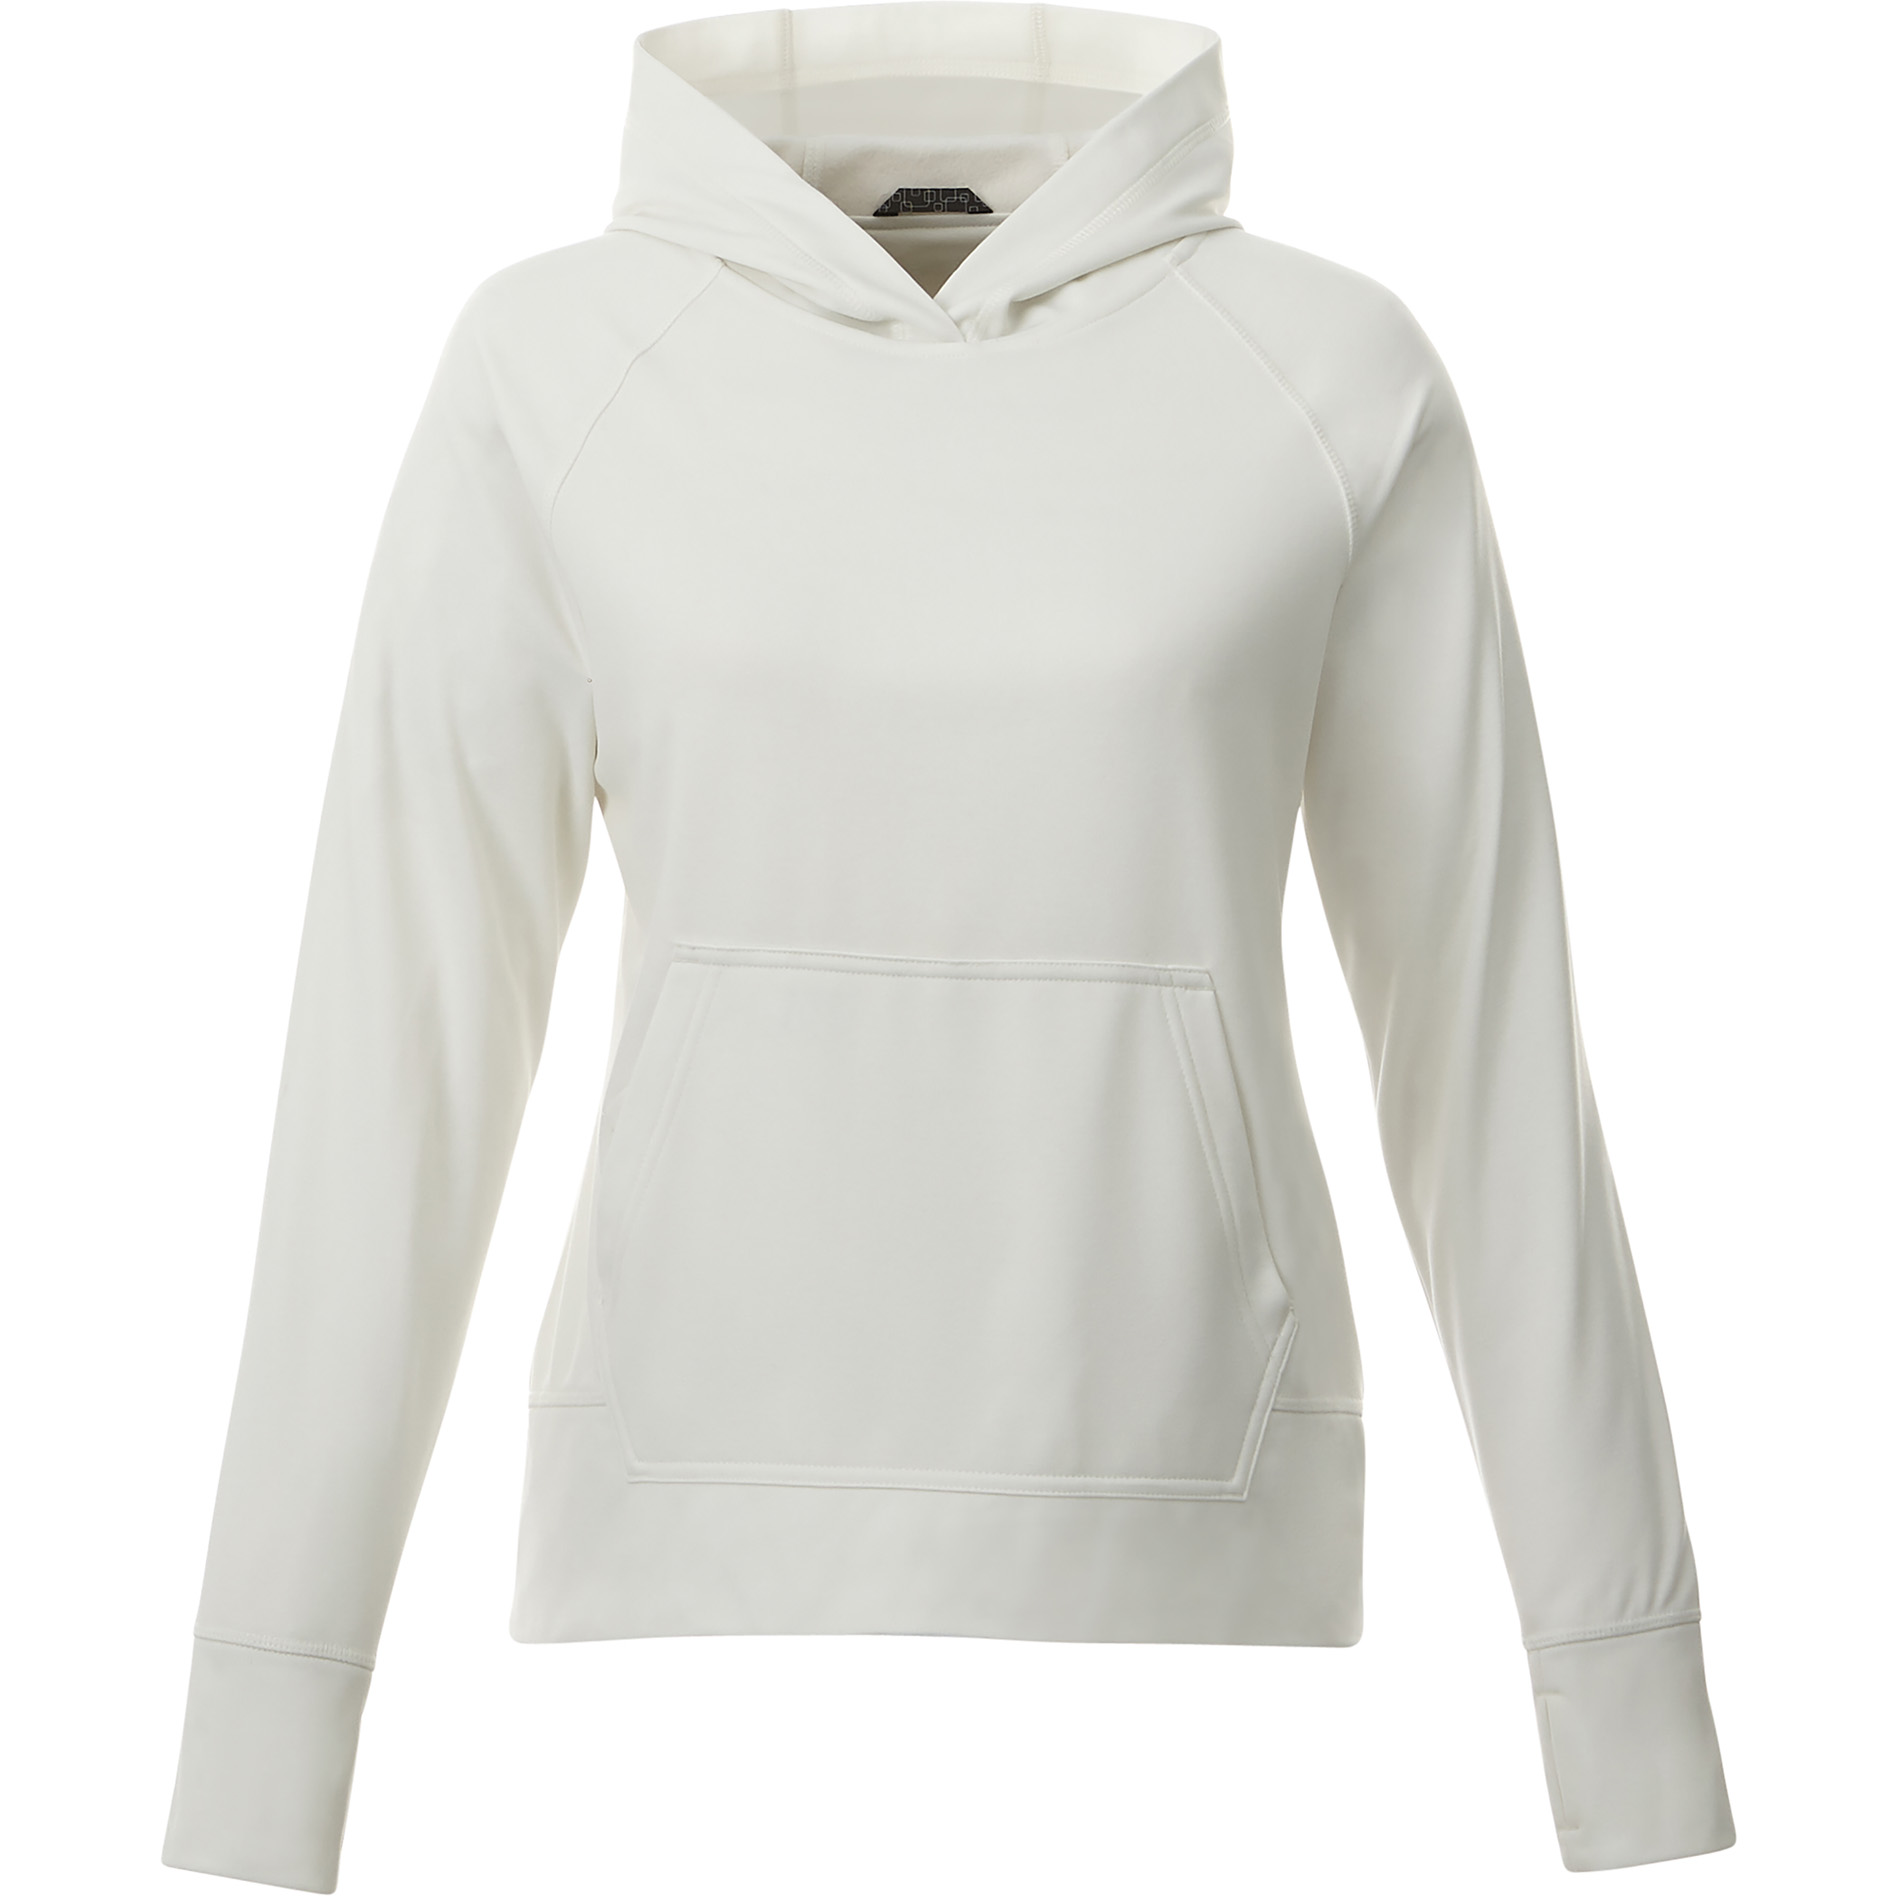 Elevate TM98214 - W-COVILLE Knit Hoody